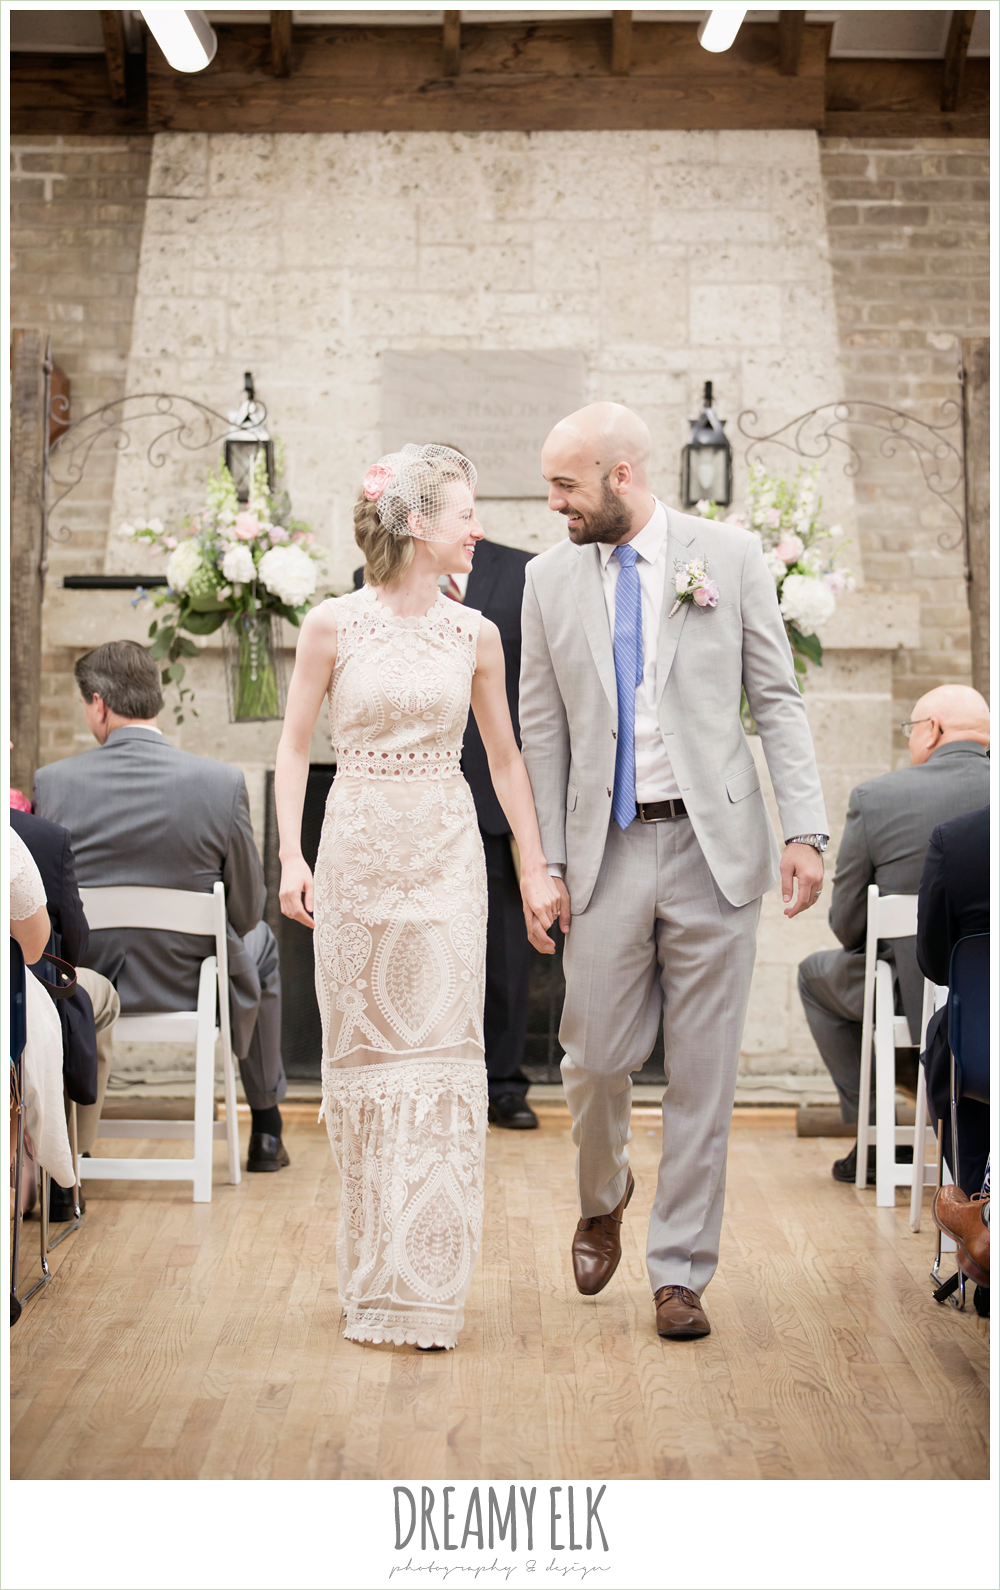 indoor wedding ceremony, bride and groom walking down aisle, spring wedding, austin, texas {dreamy elk photography and design}